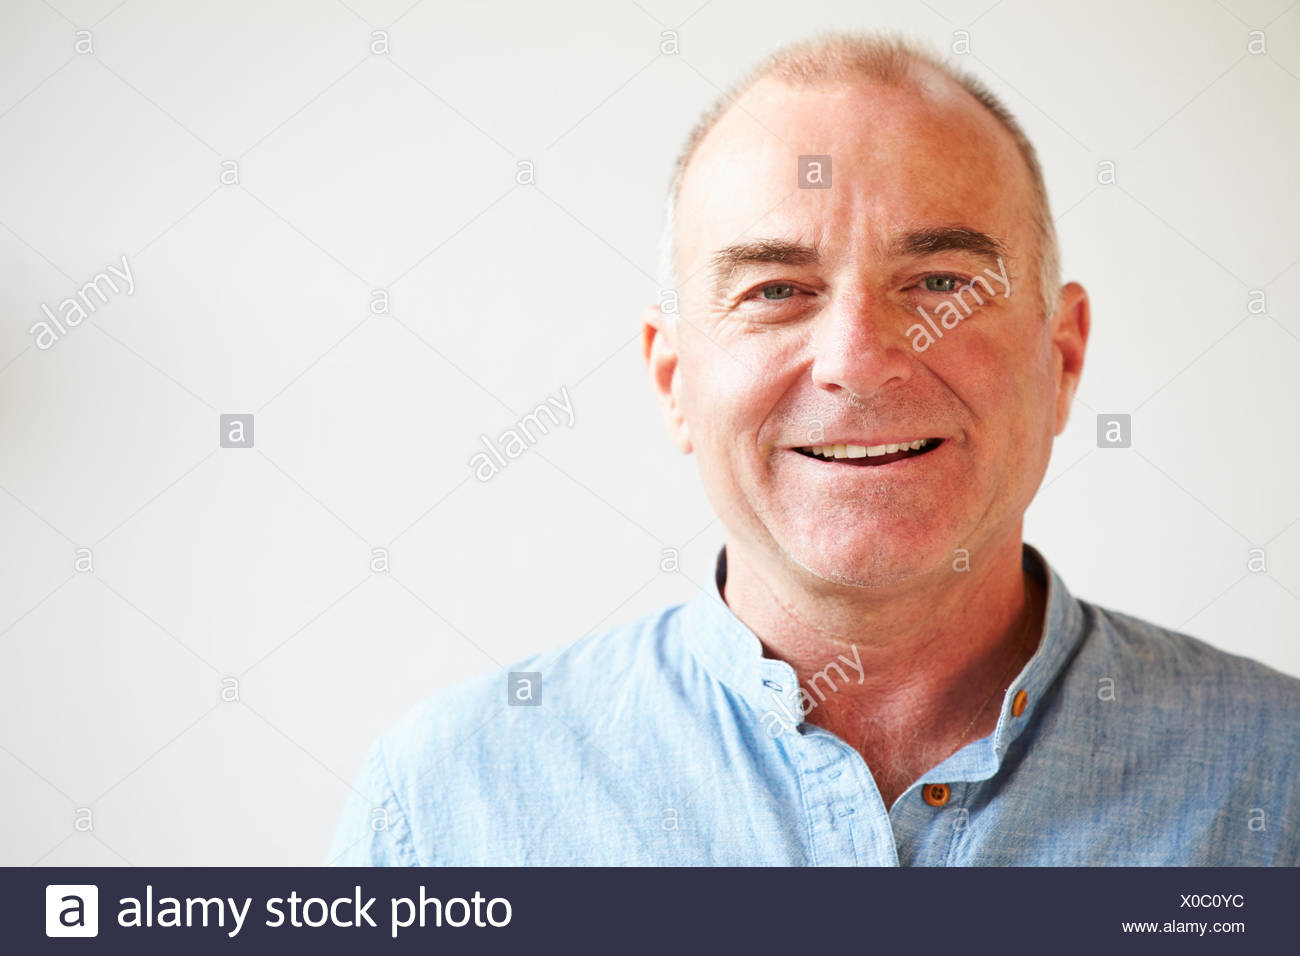 Portrait of Man Standing By Wall Photo Stock